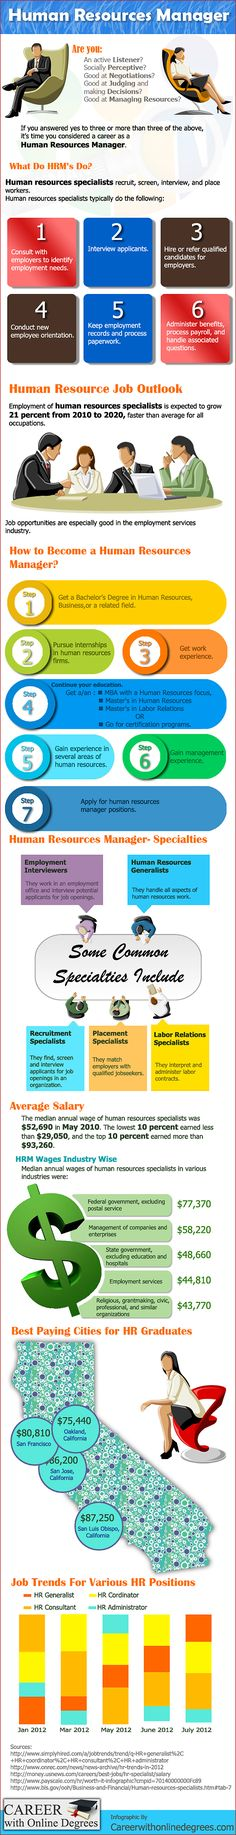 How to Become a Human Resources Manager? #HR #HumanResources http://careerwithonlinedegrees.com/top-professions/how-to-human-resources-manager/ #shrm #shrmli #longisland #humanresources #talentmanagement